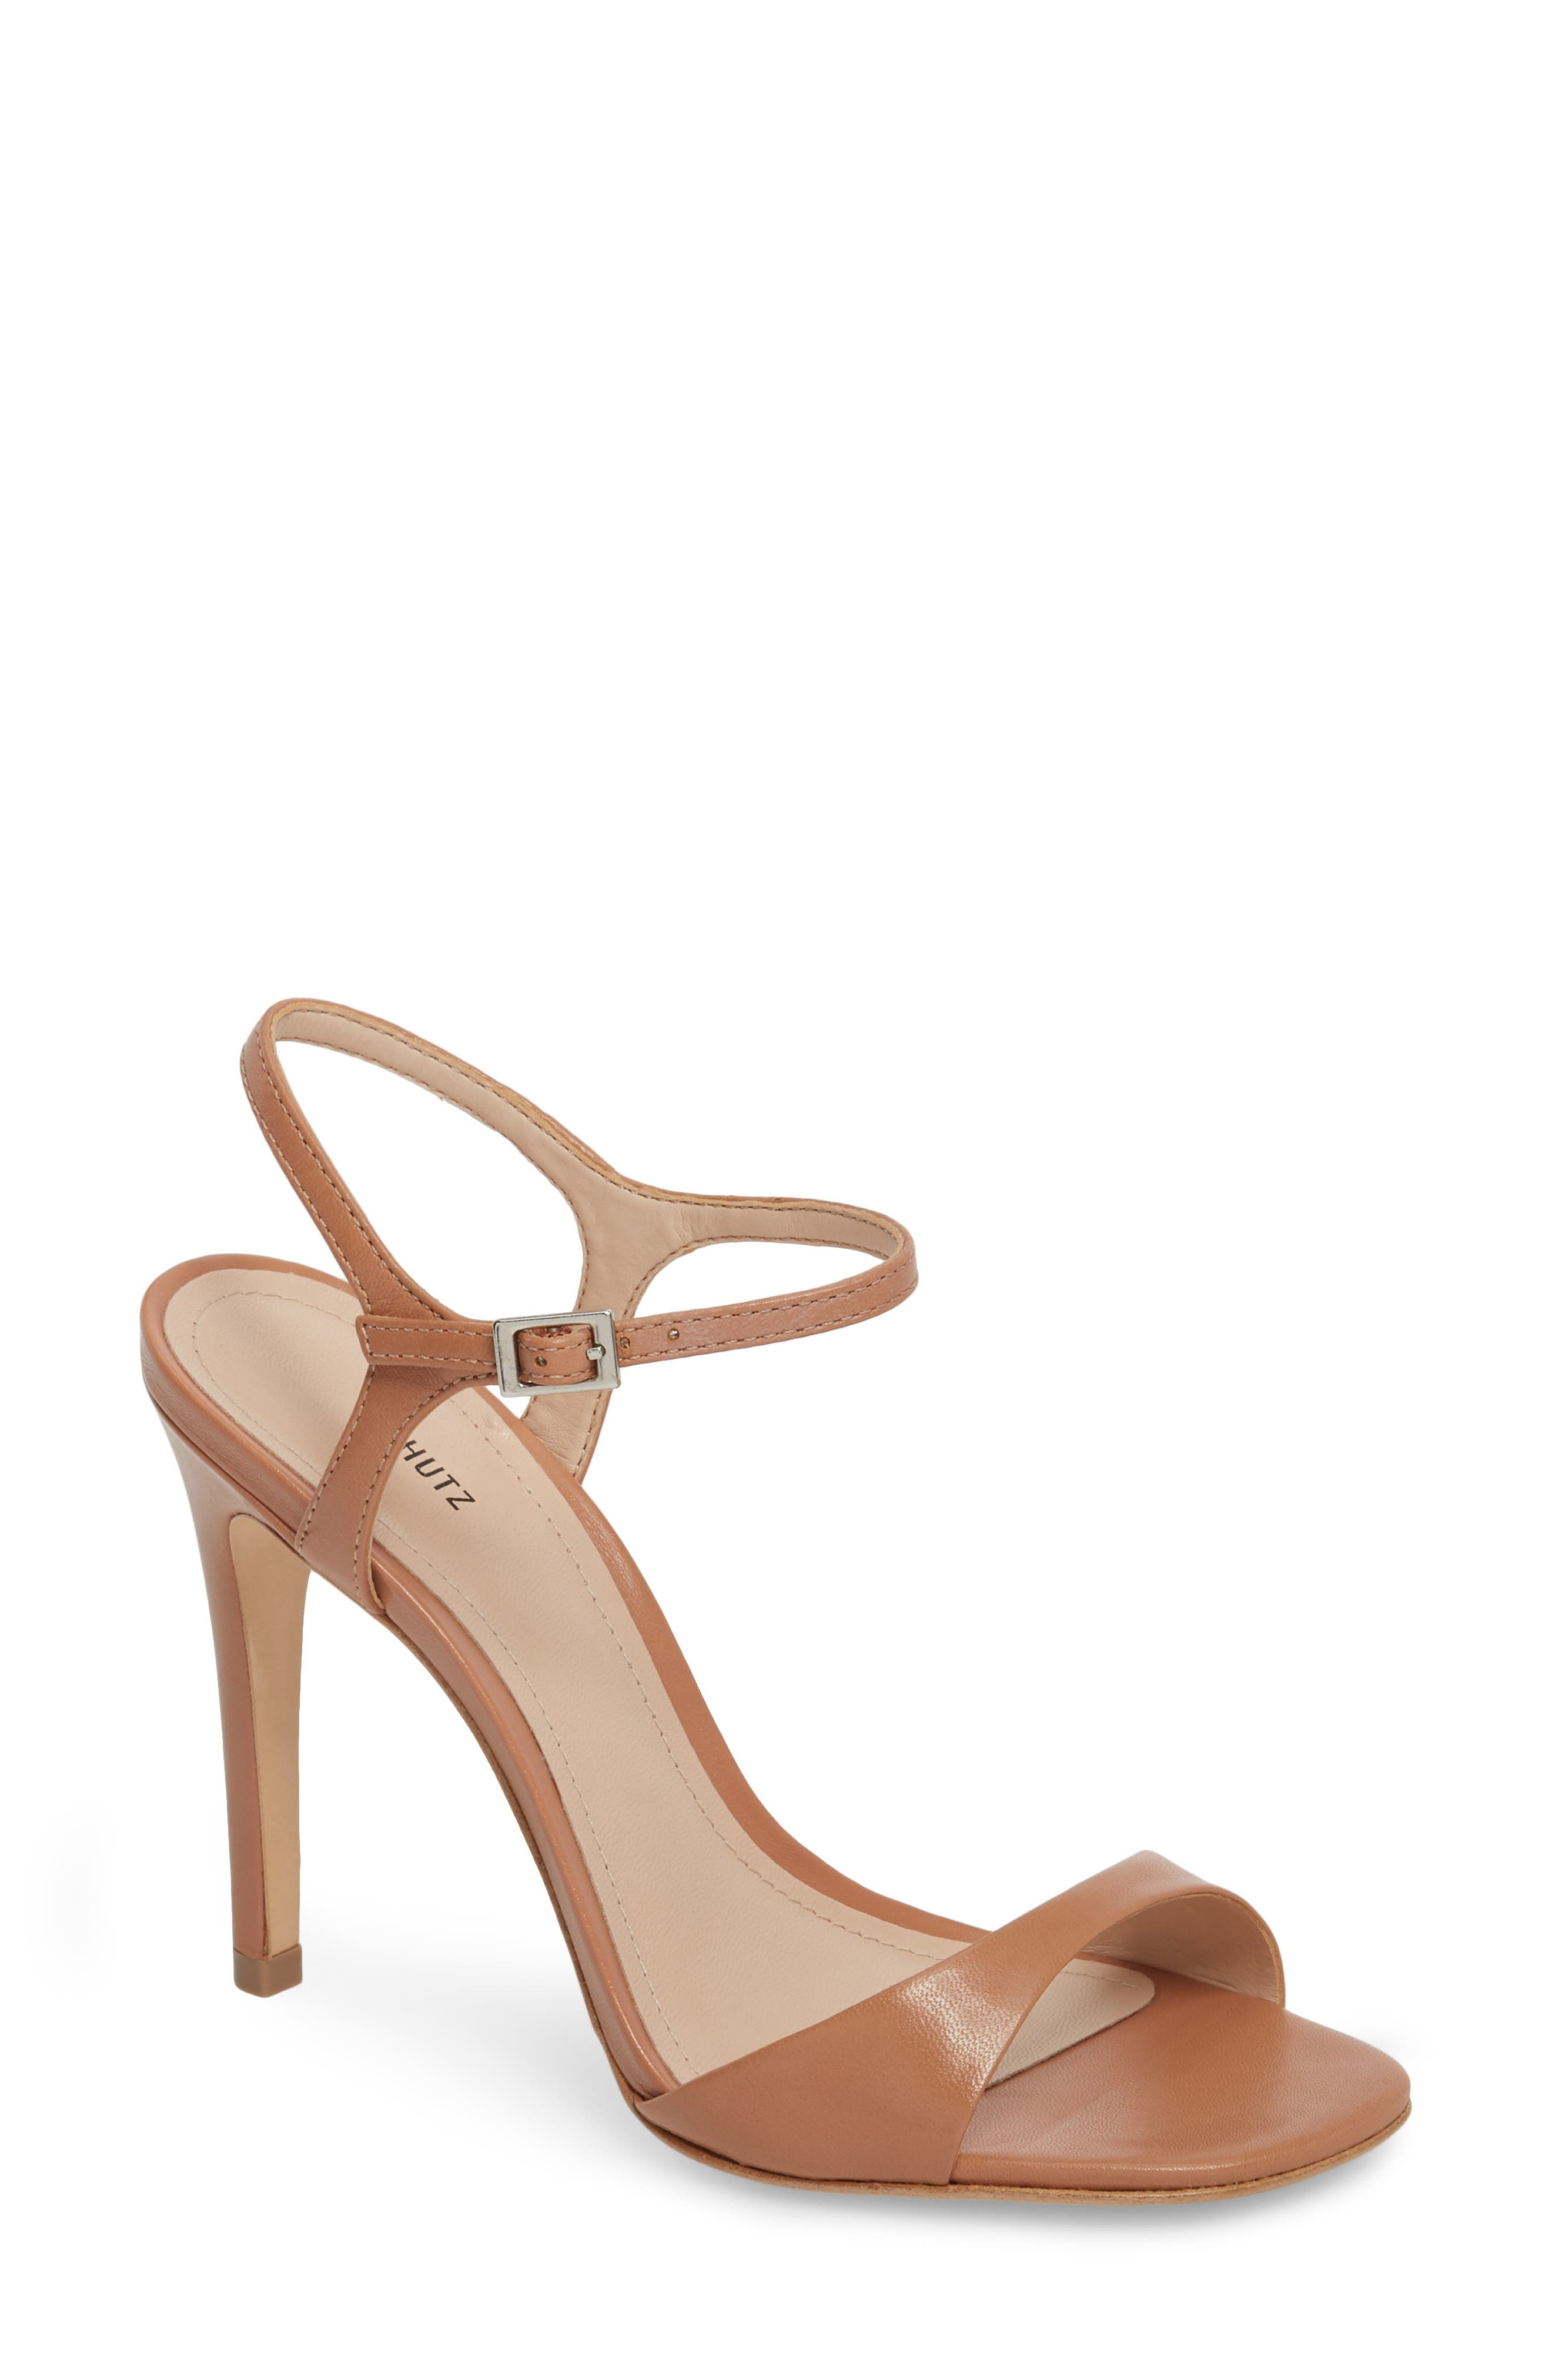 Jade Ankle Strap Sandal,                             Main thumbnail 1, color,                             TOASTED NUT